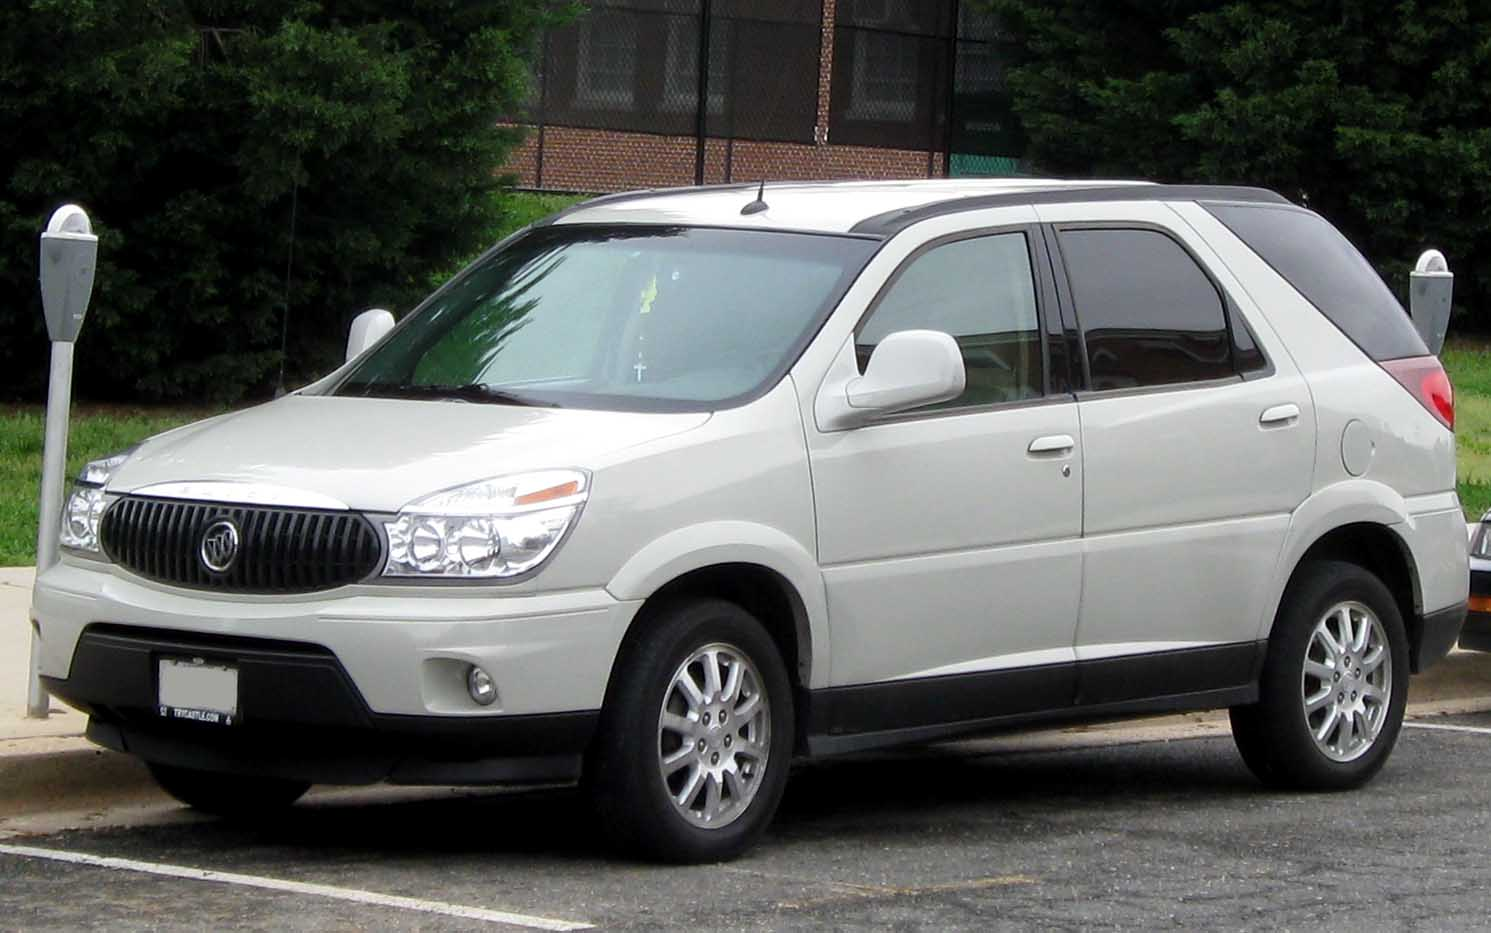 Buick Rendezvous Wikipedia 2004 Dodge Silver Fuse Box Diagram